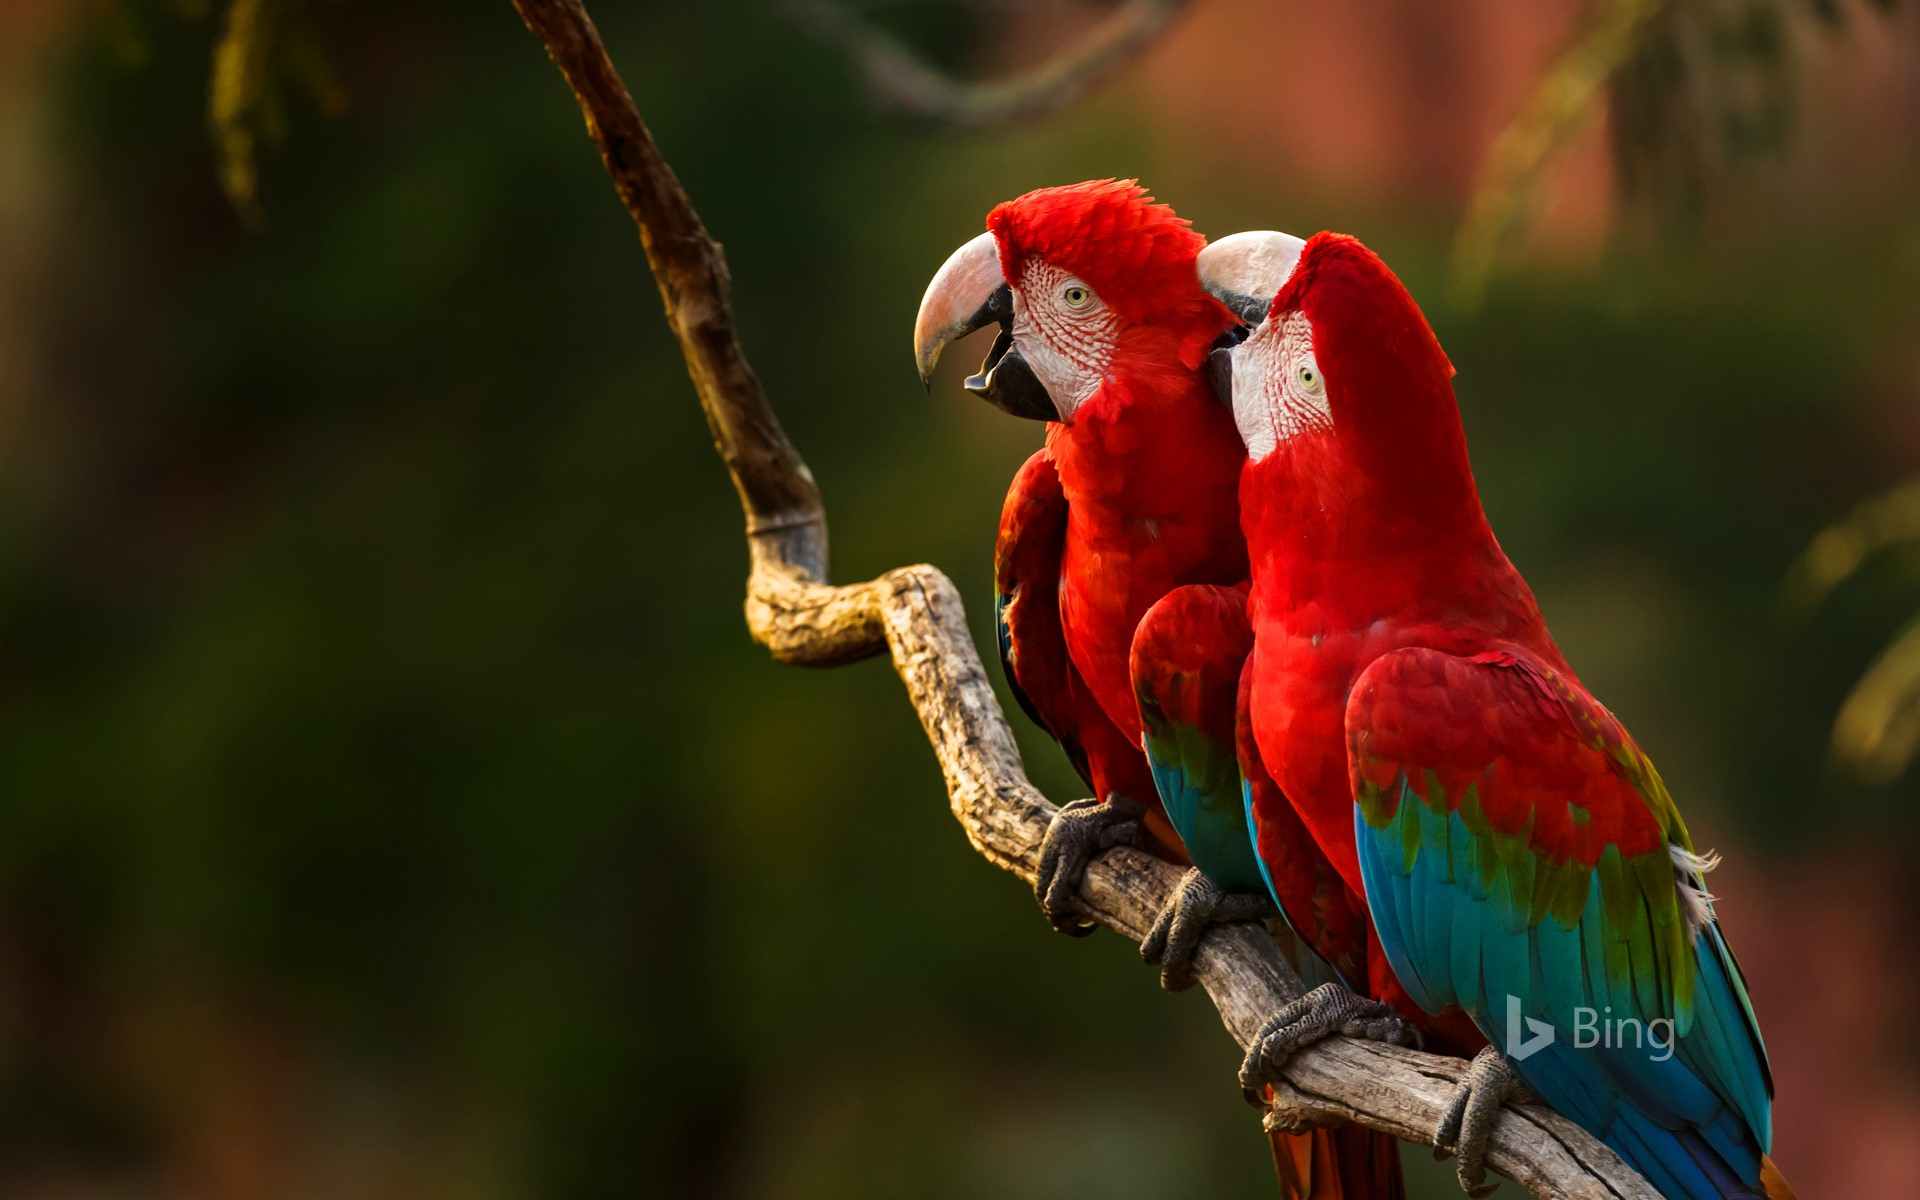 Pair of red-and-green macaws perching on a tree branch, Buraco das Araras, Mato Grosso do Sul, Brazil